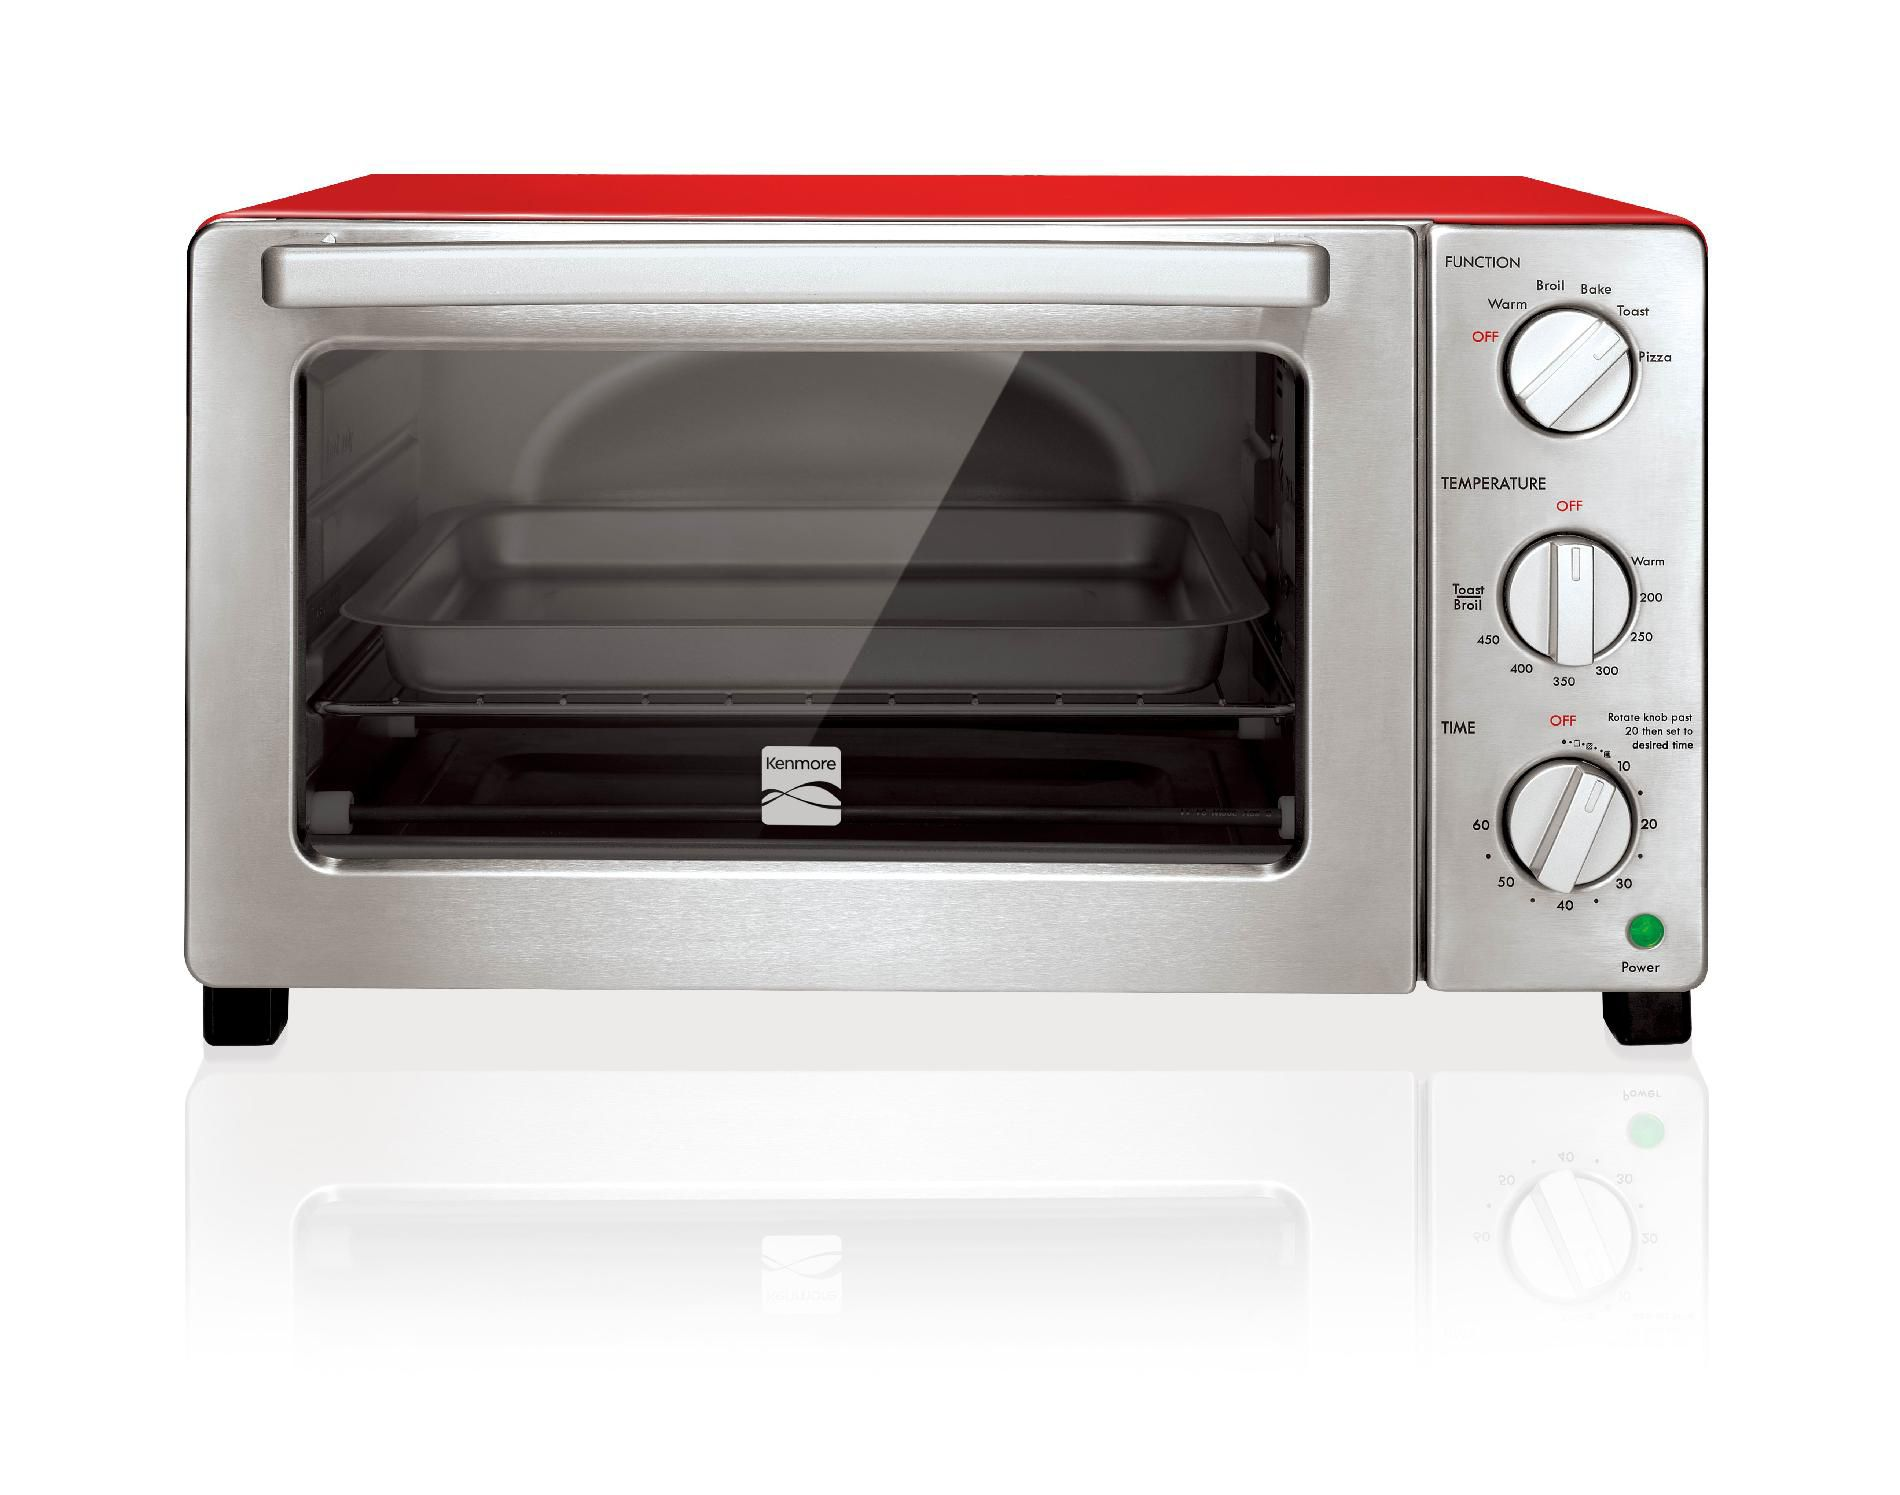 Kenmore 6-Slice Convection Toaster Oven  Red